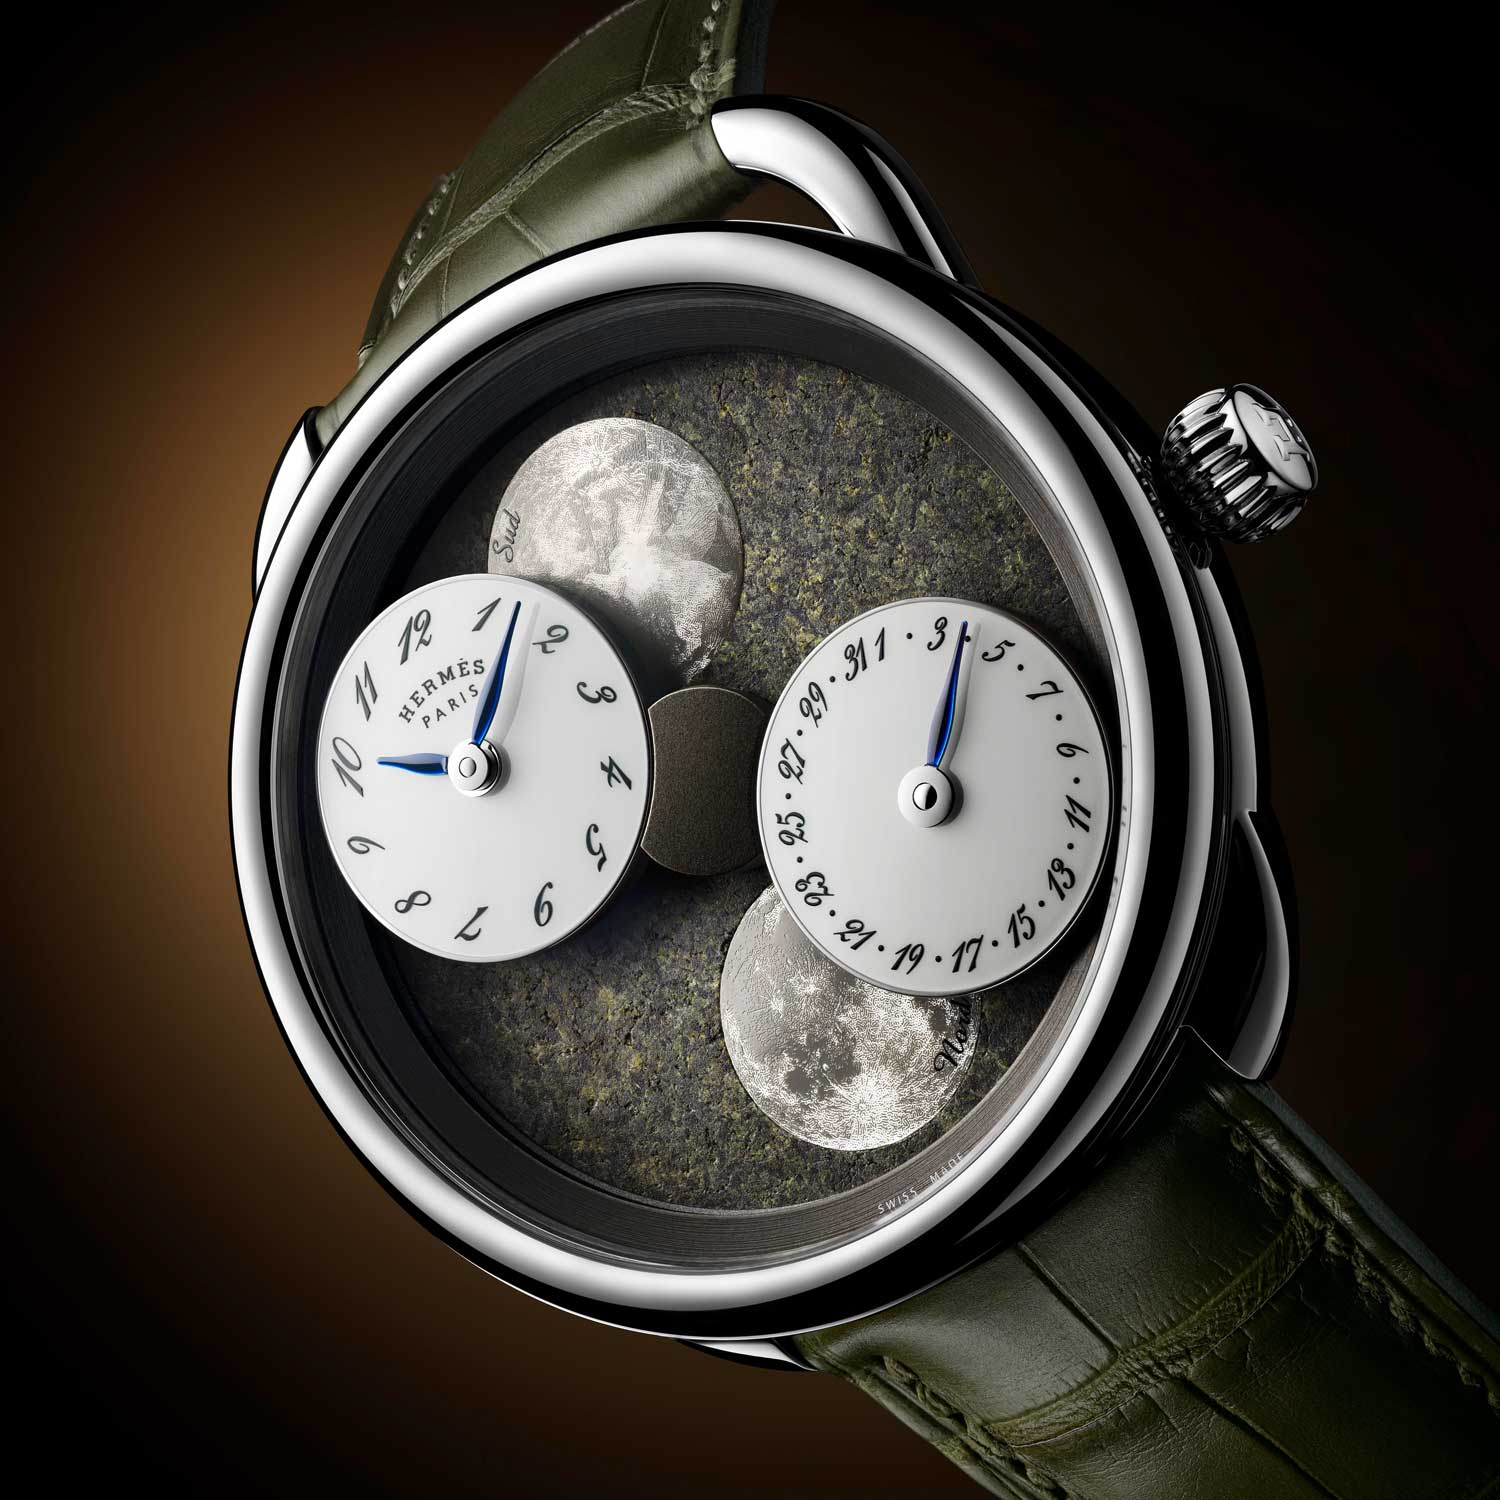 The Hermès Arceau L'Heure de la Lune with Martian meteorite dial is highly limited with just two pieces worldwide.